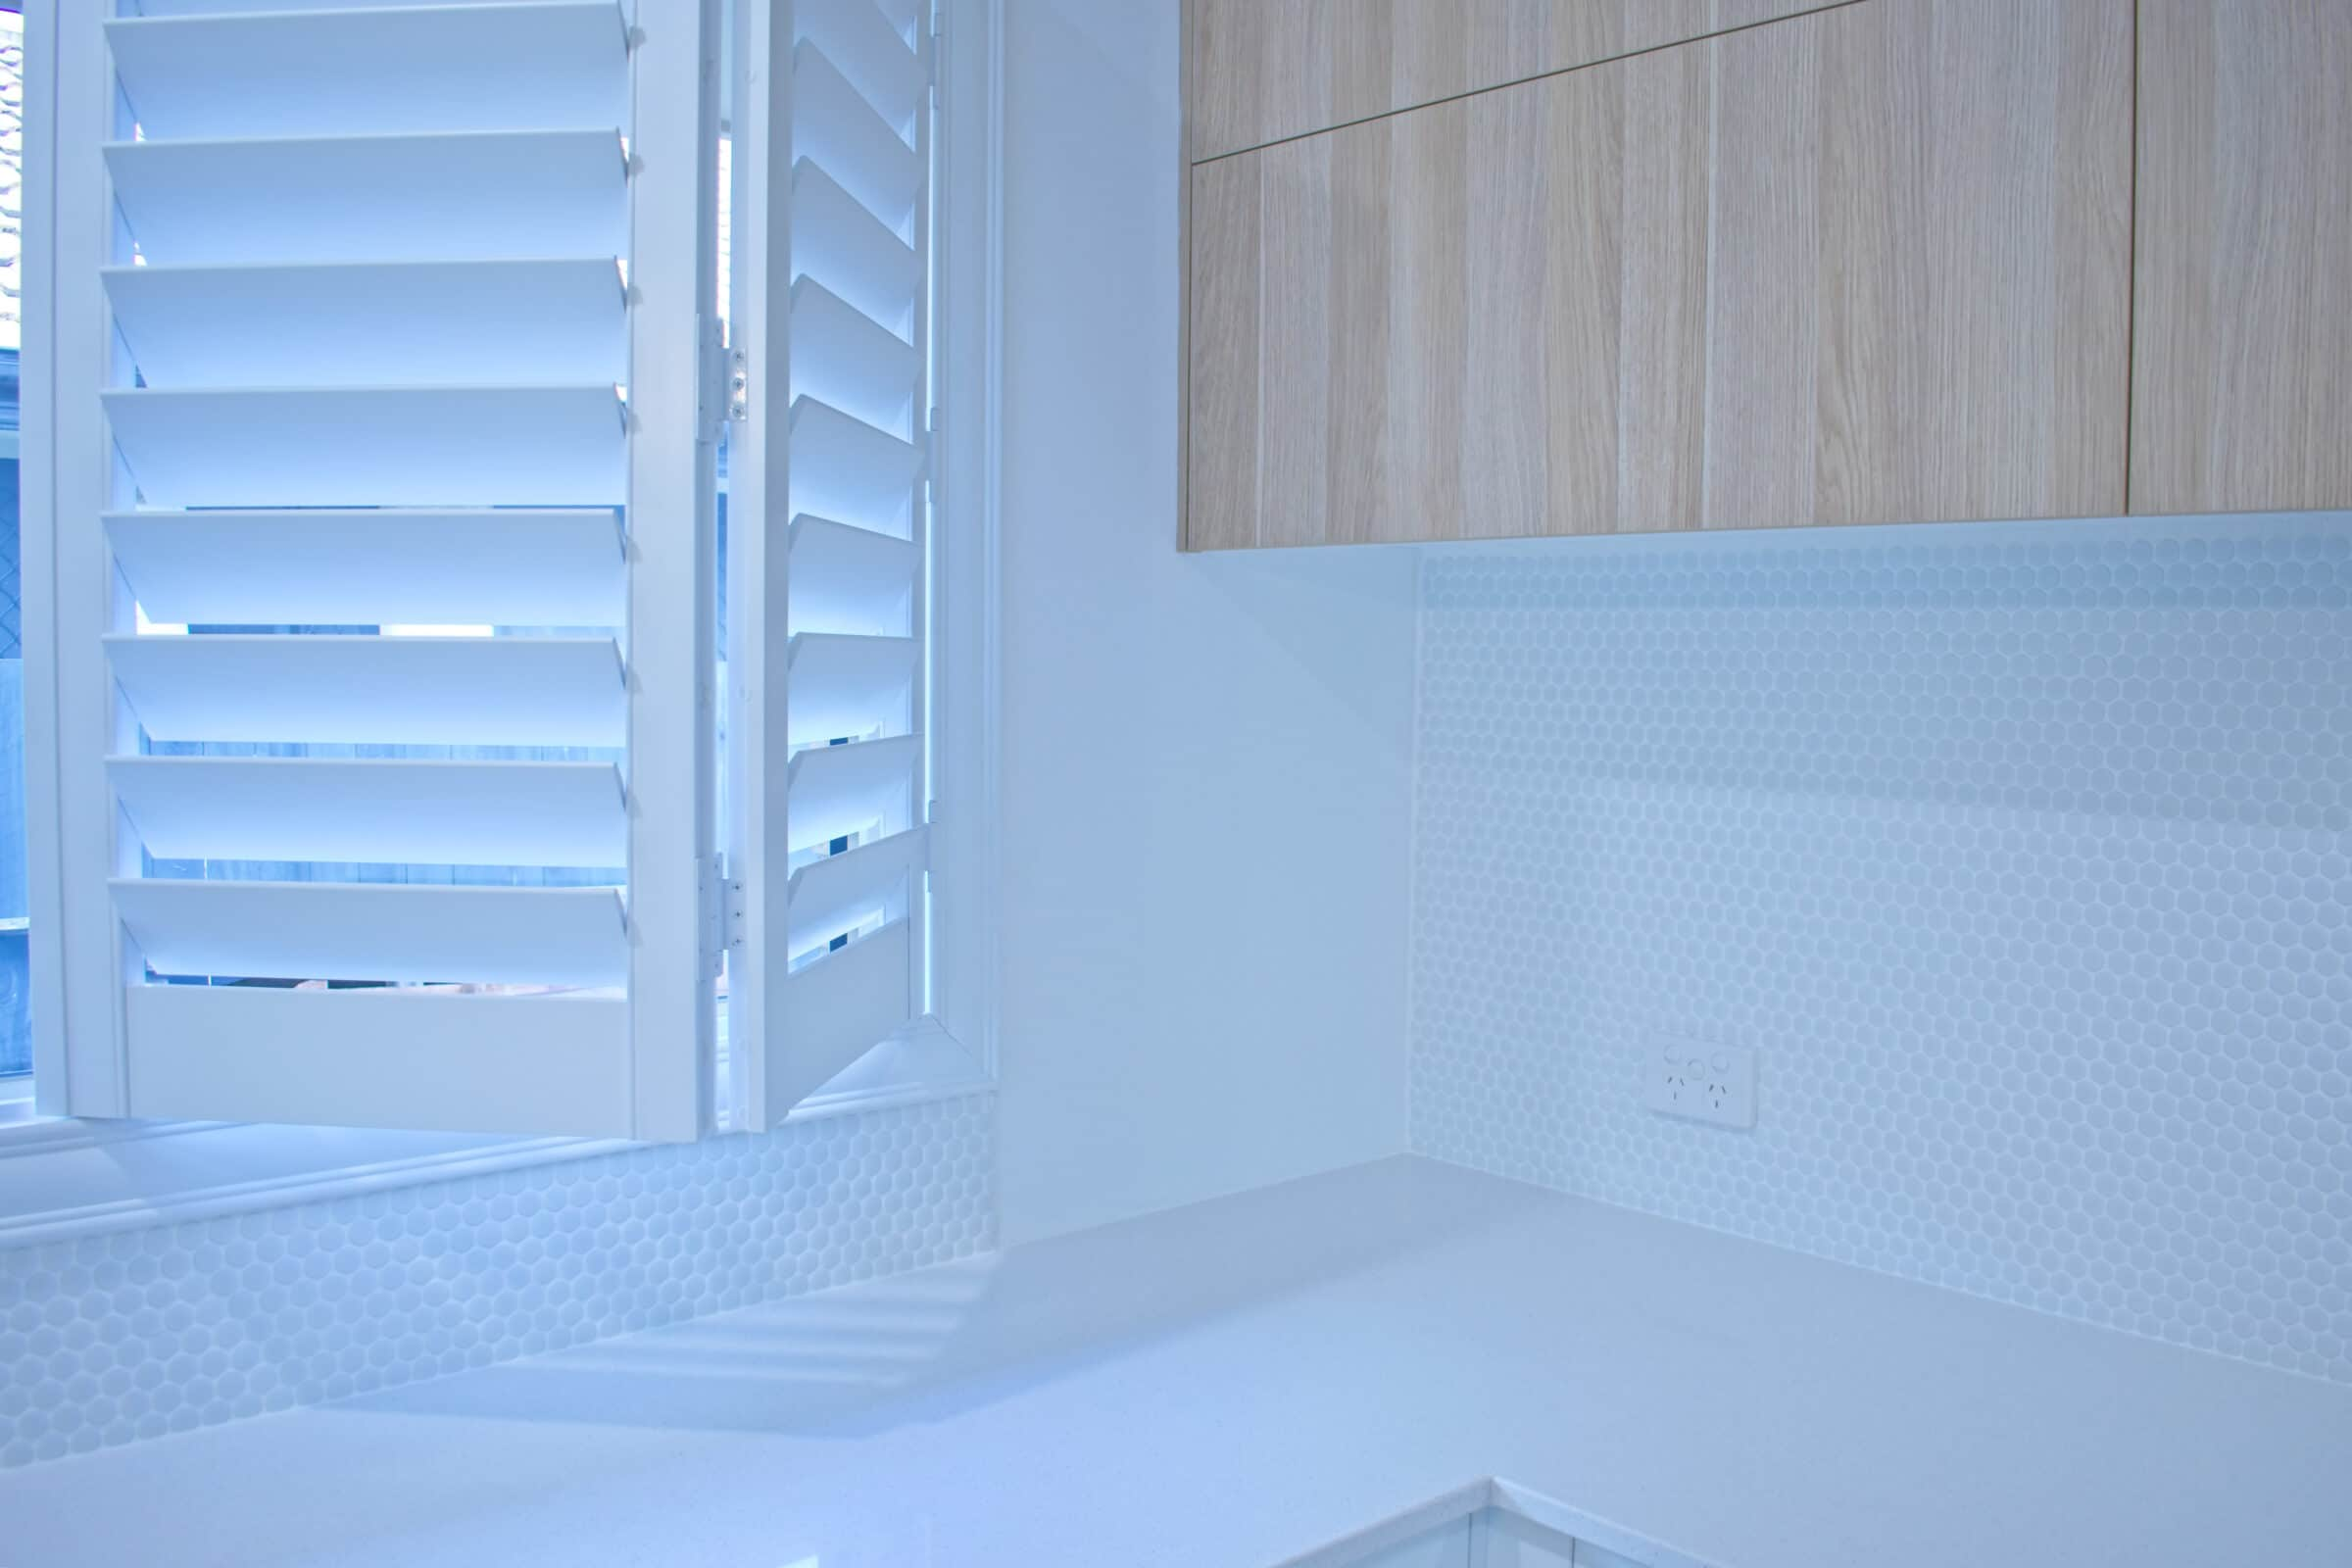 Shutters are more versatile than blinds